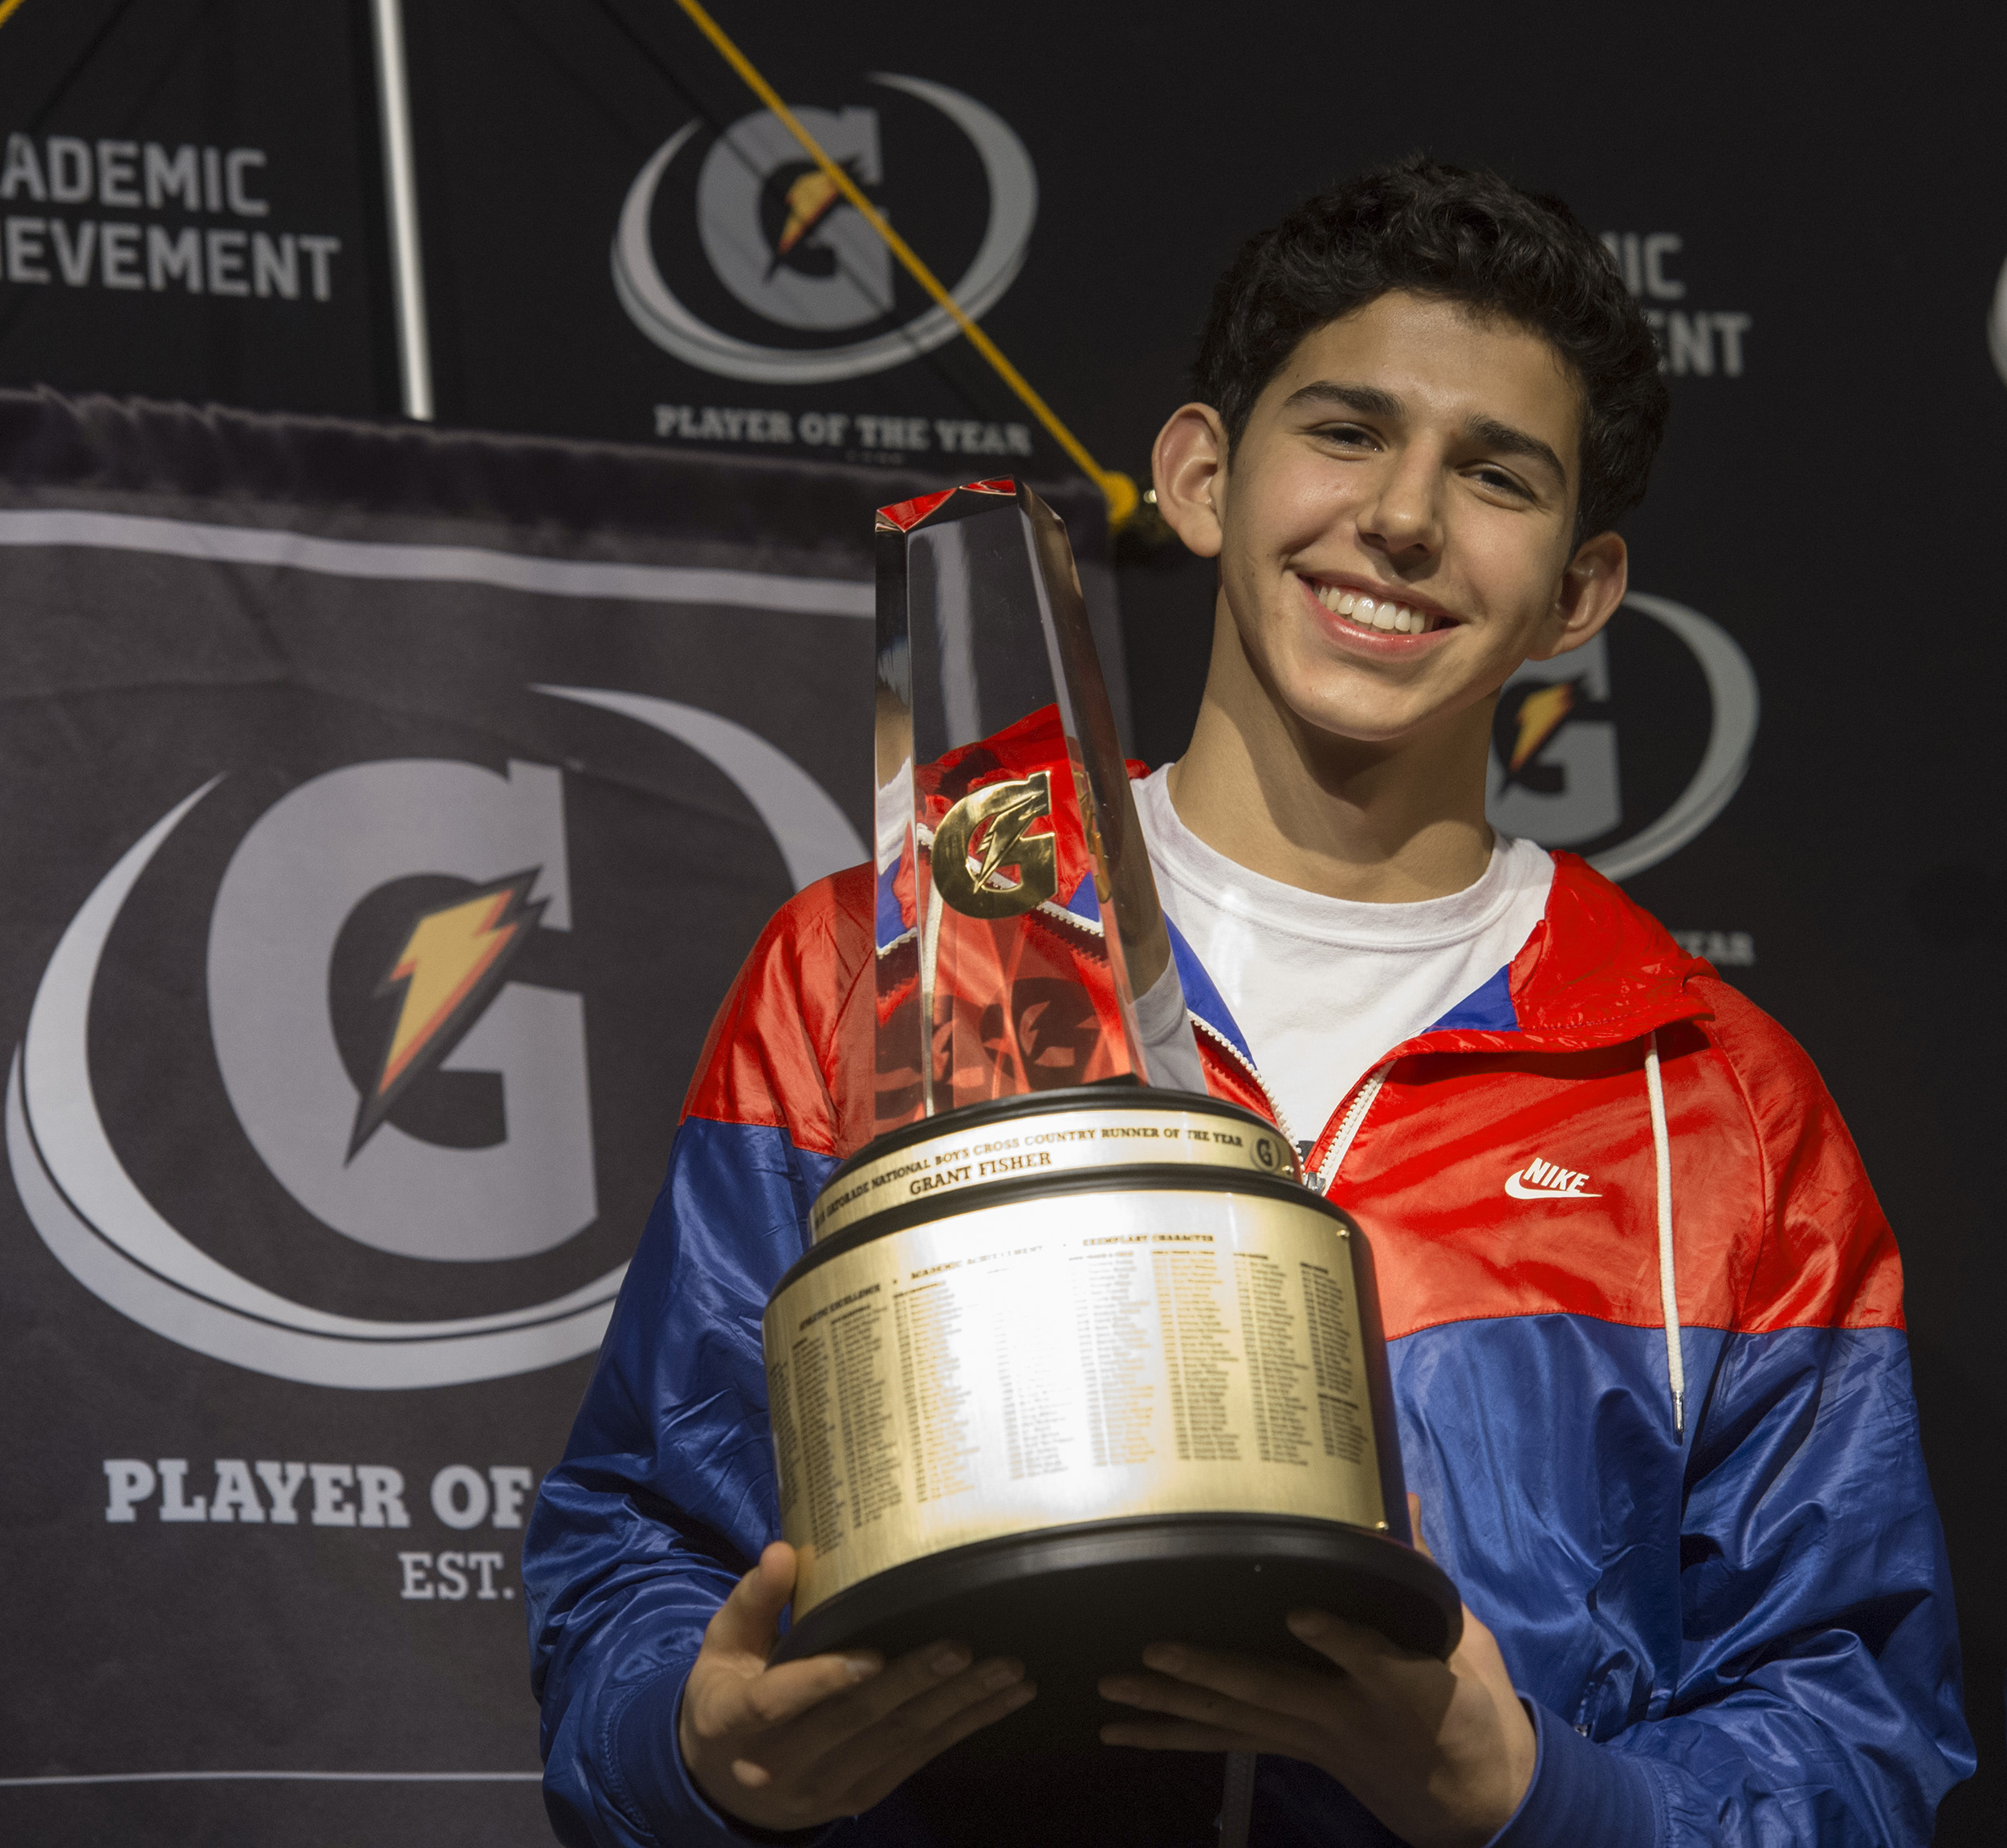 Grand Blanc's (Mich.) Grant Fisher was named  Gatorade National Cross Country Runner of the Year / Susan Goldman